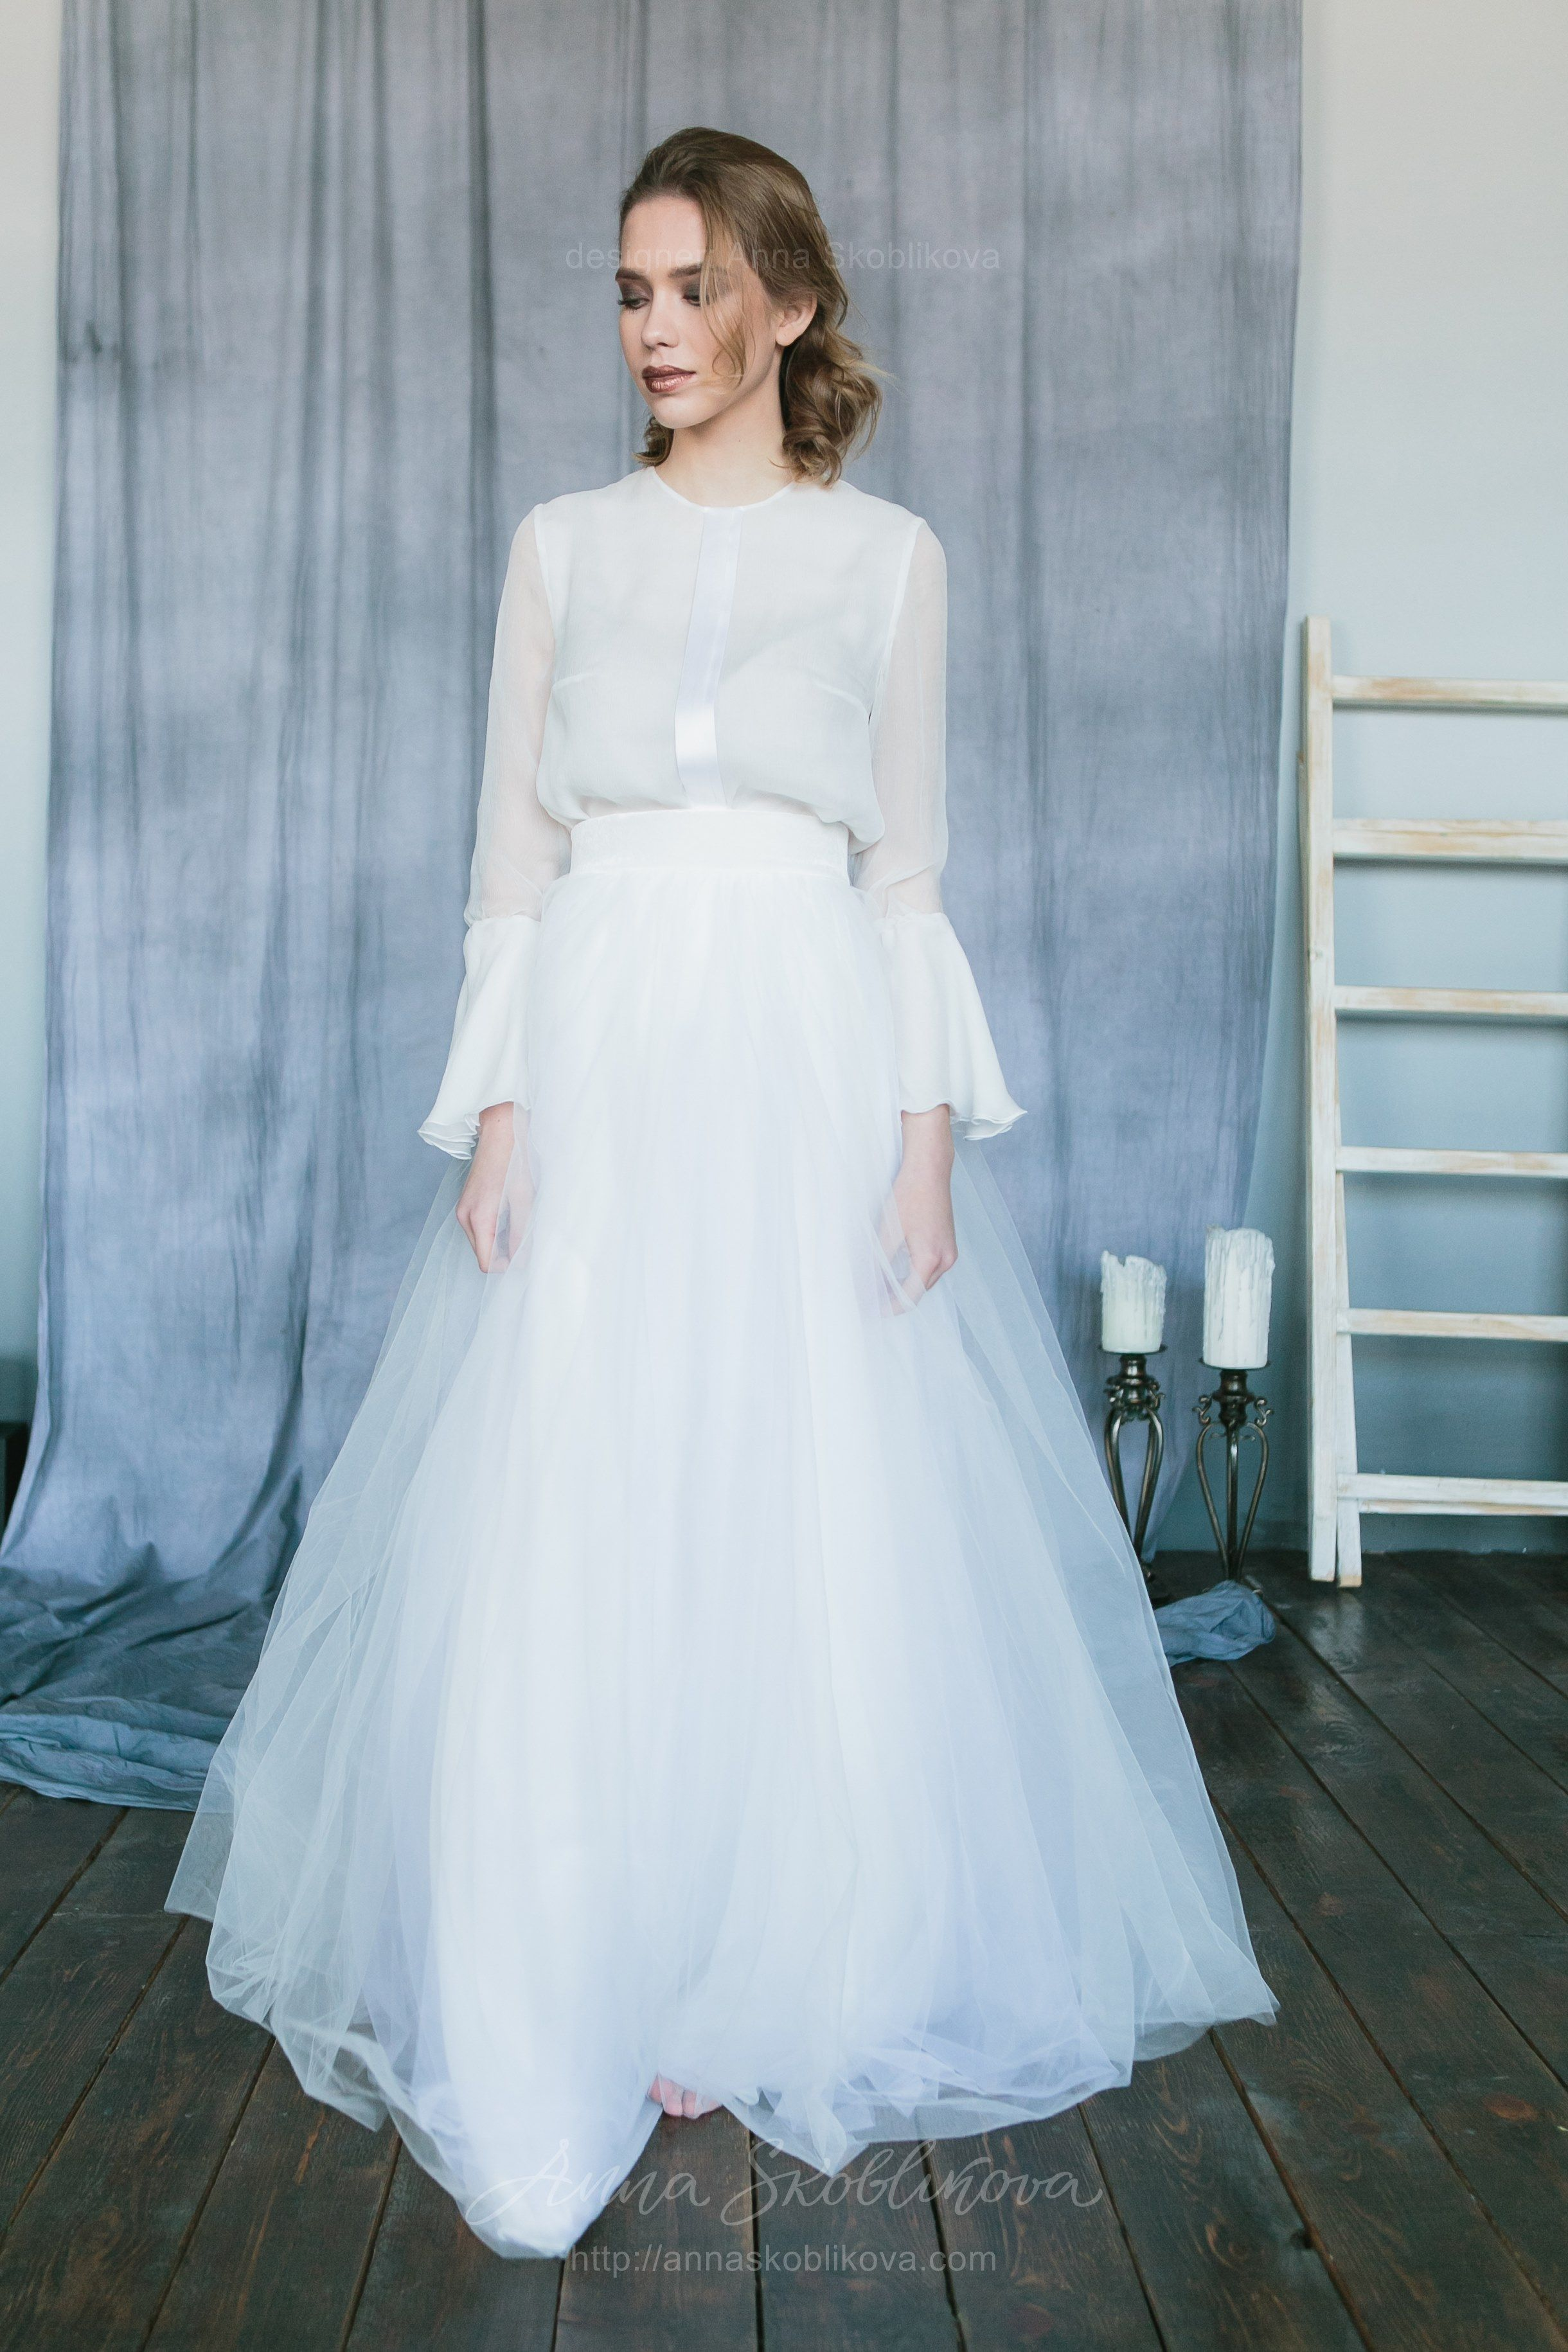 23+ Tulle skirt wedding gown information